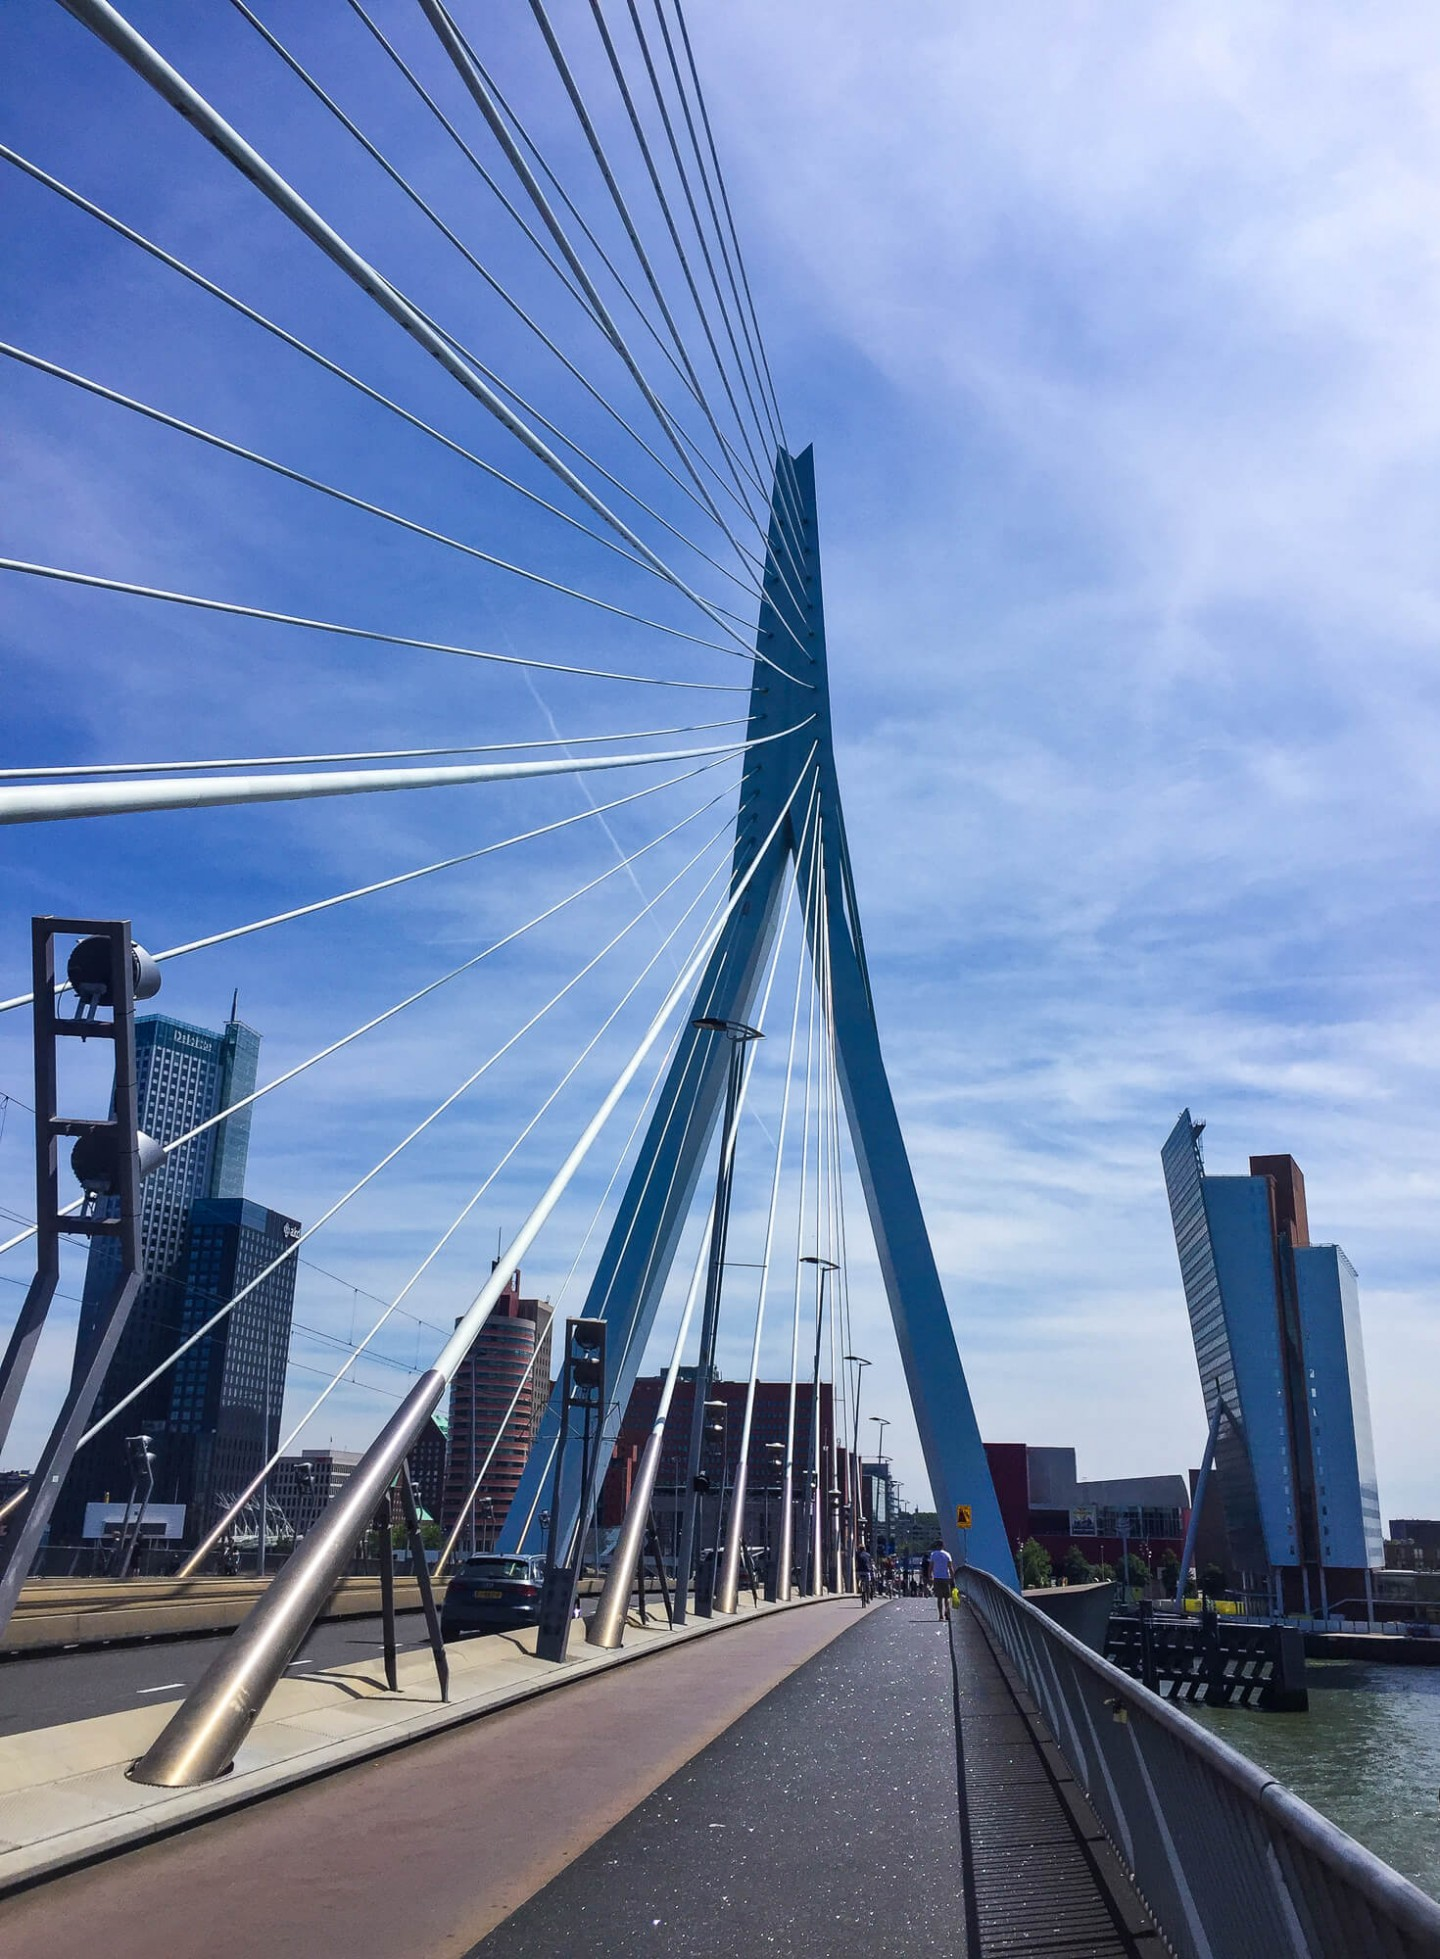 The Erasmus Bridge in the centre of Rotterdam connects the north and south parts of the city.